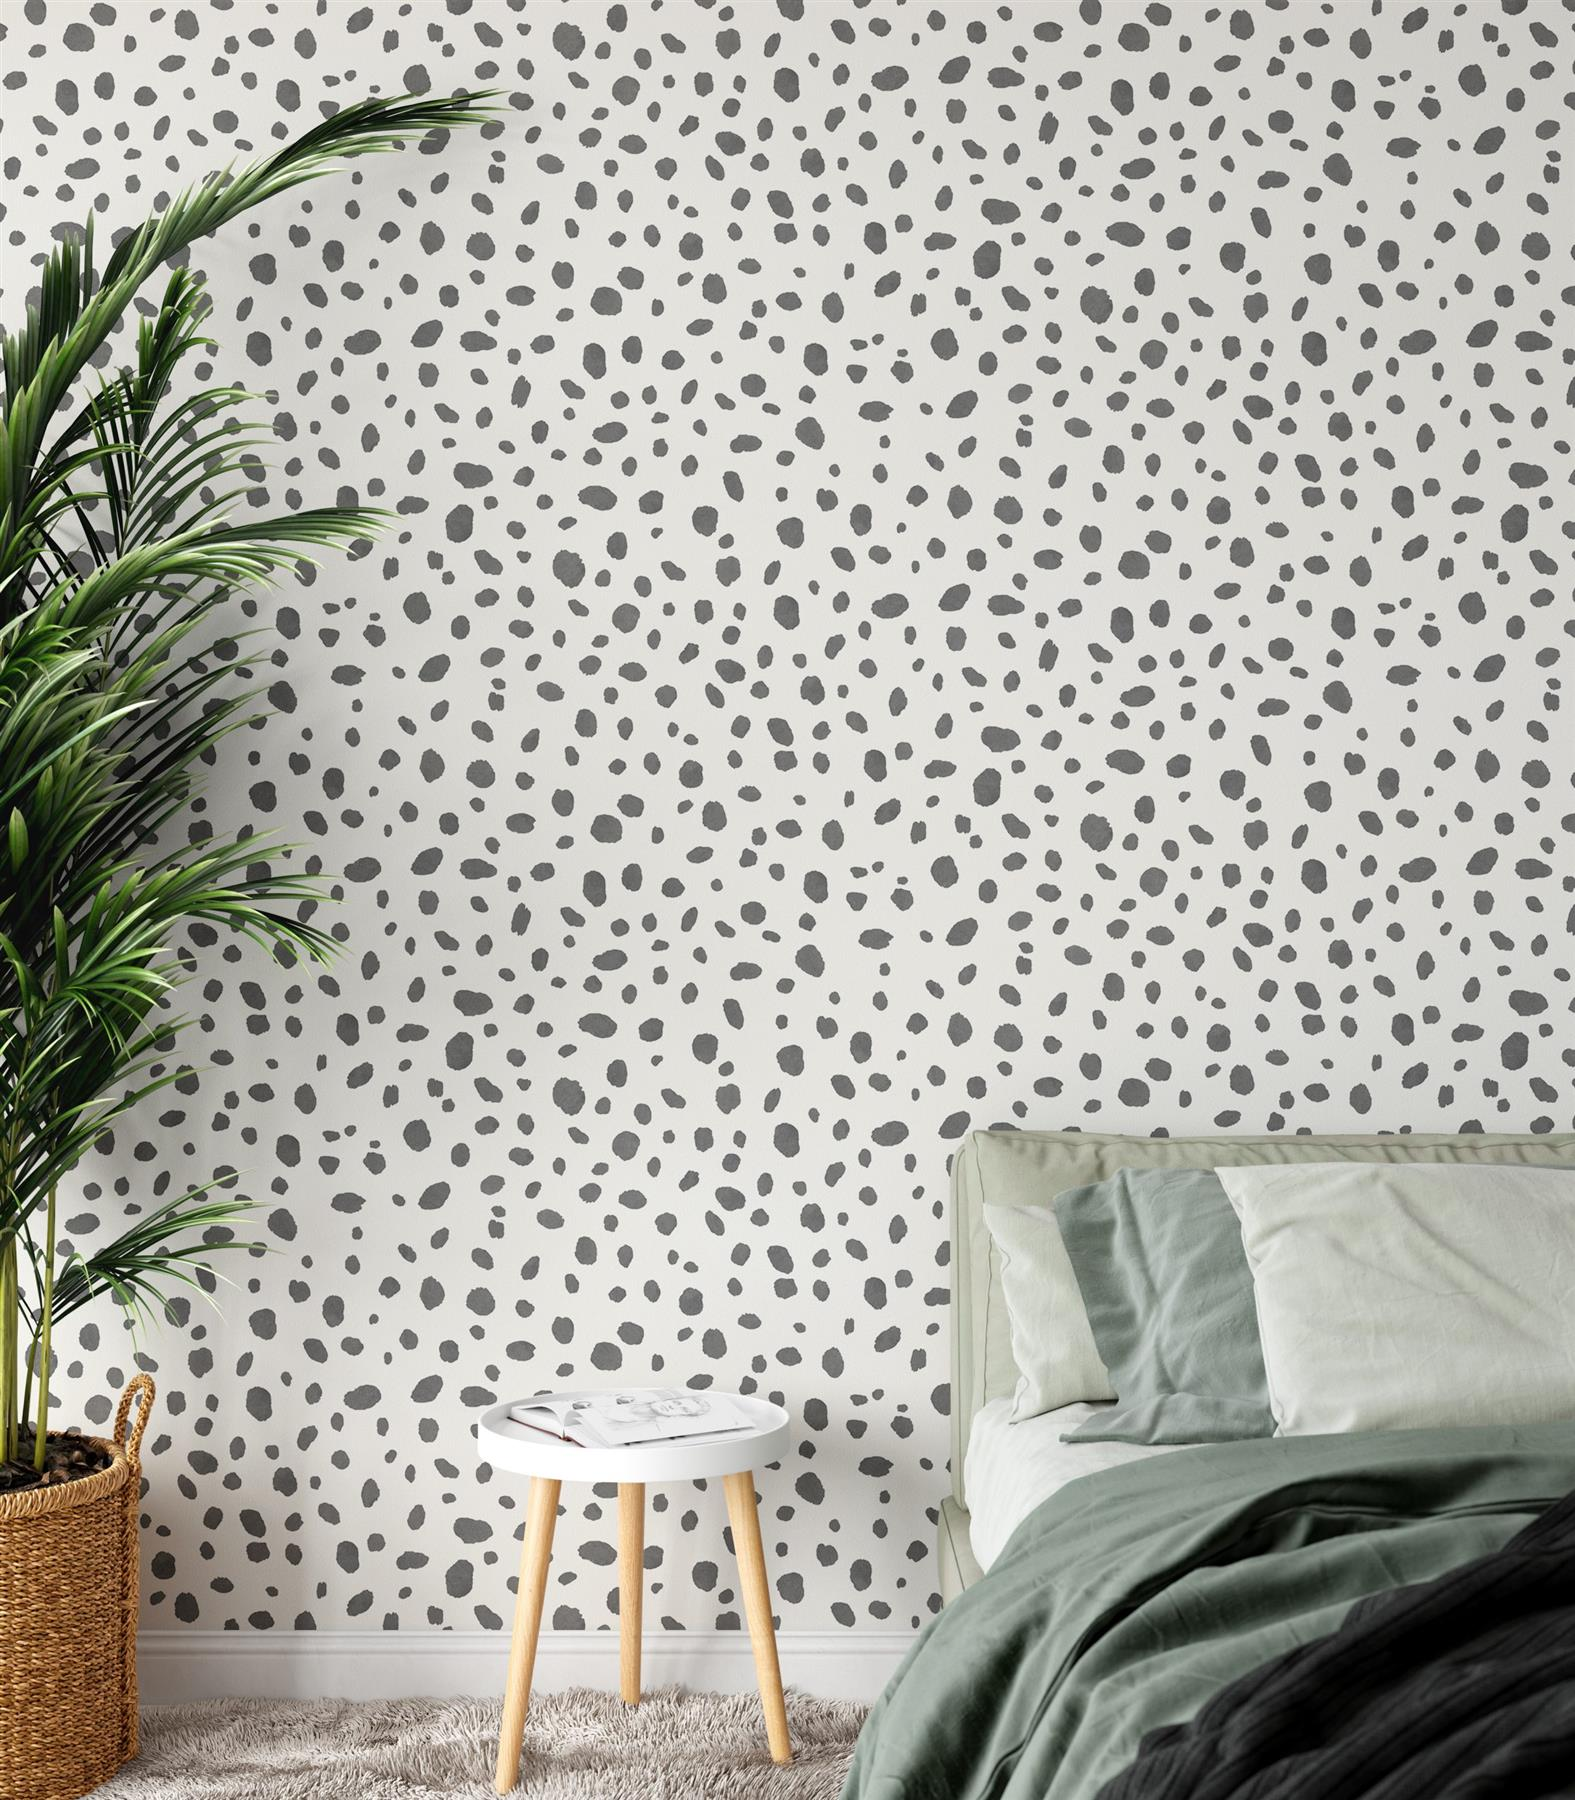 Holden-Decor-Dalmatian-Spot-Print-Trendy-Contemporary-Wallpaper-2-Colours thumbnail 3